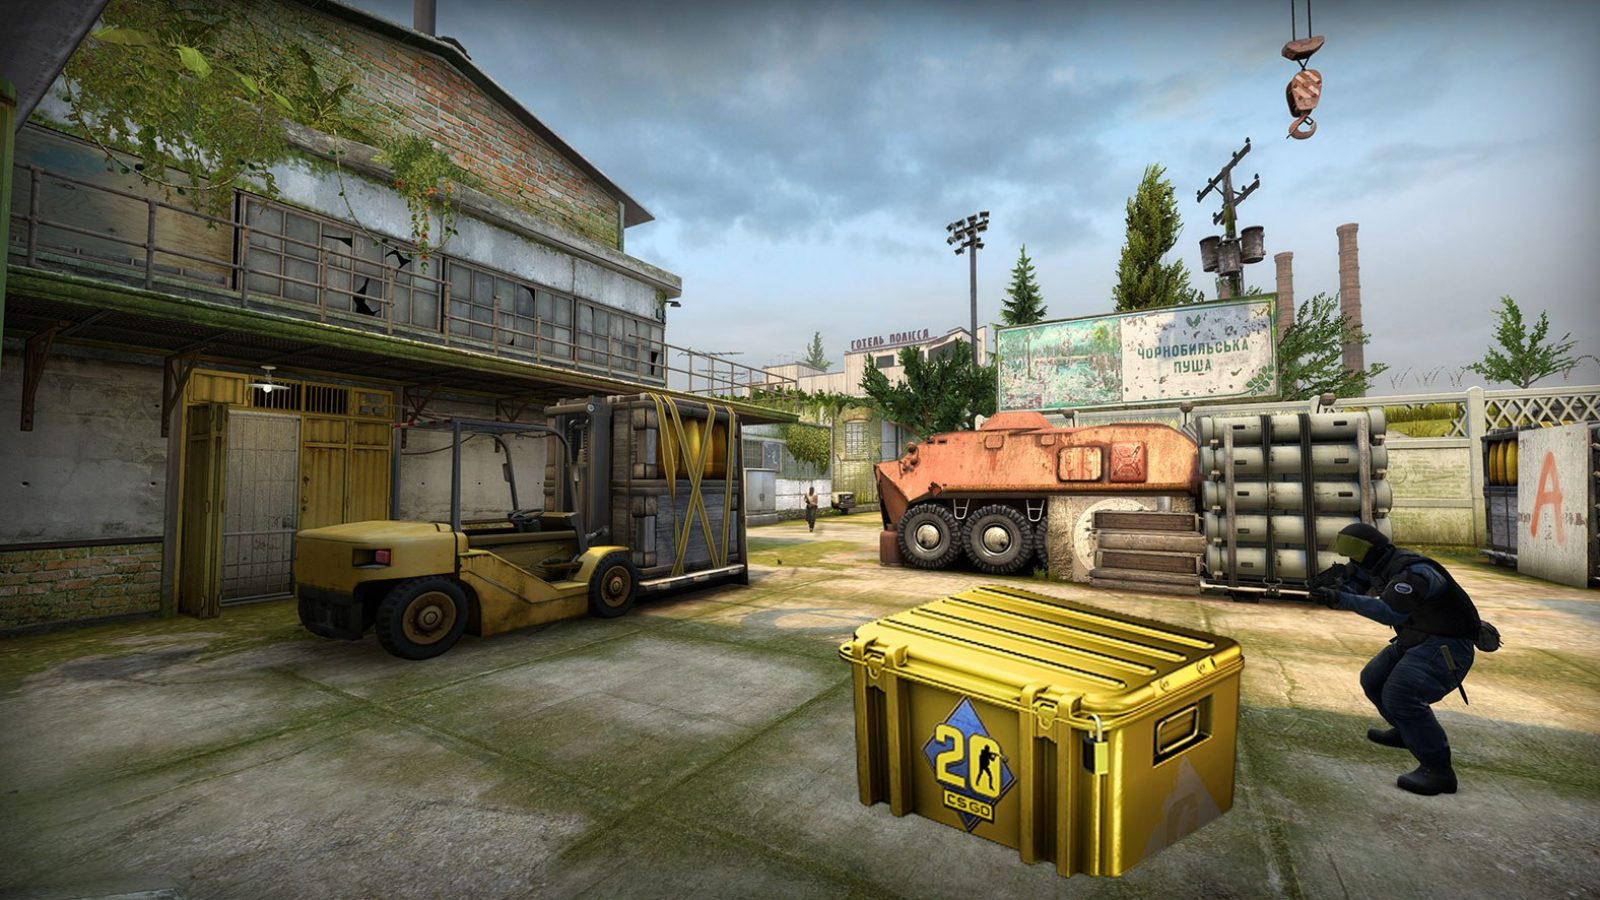 Fans disappointed with CS:GO's 20th anniversary